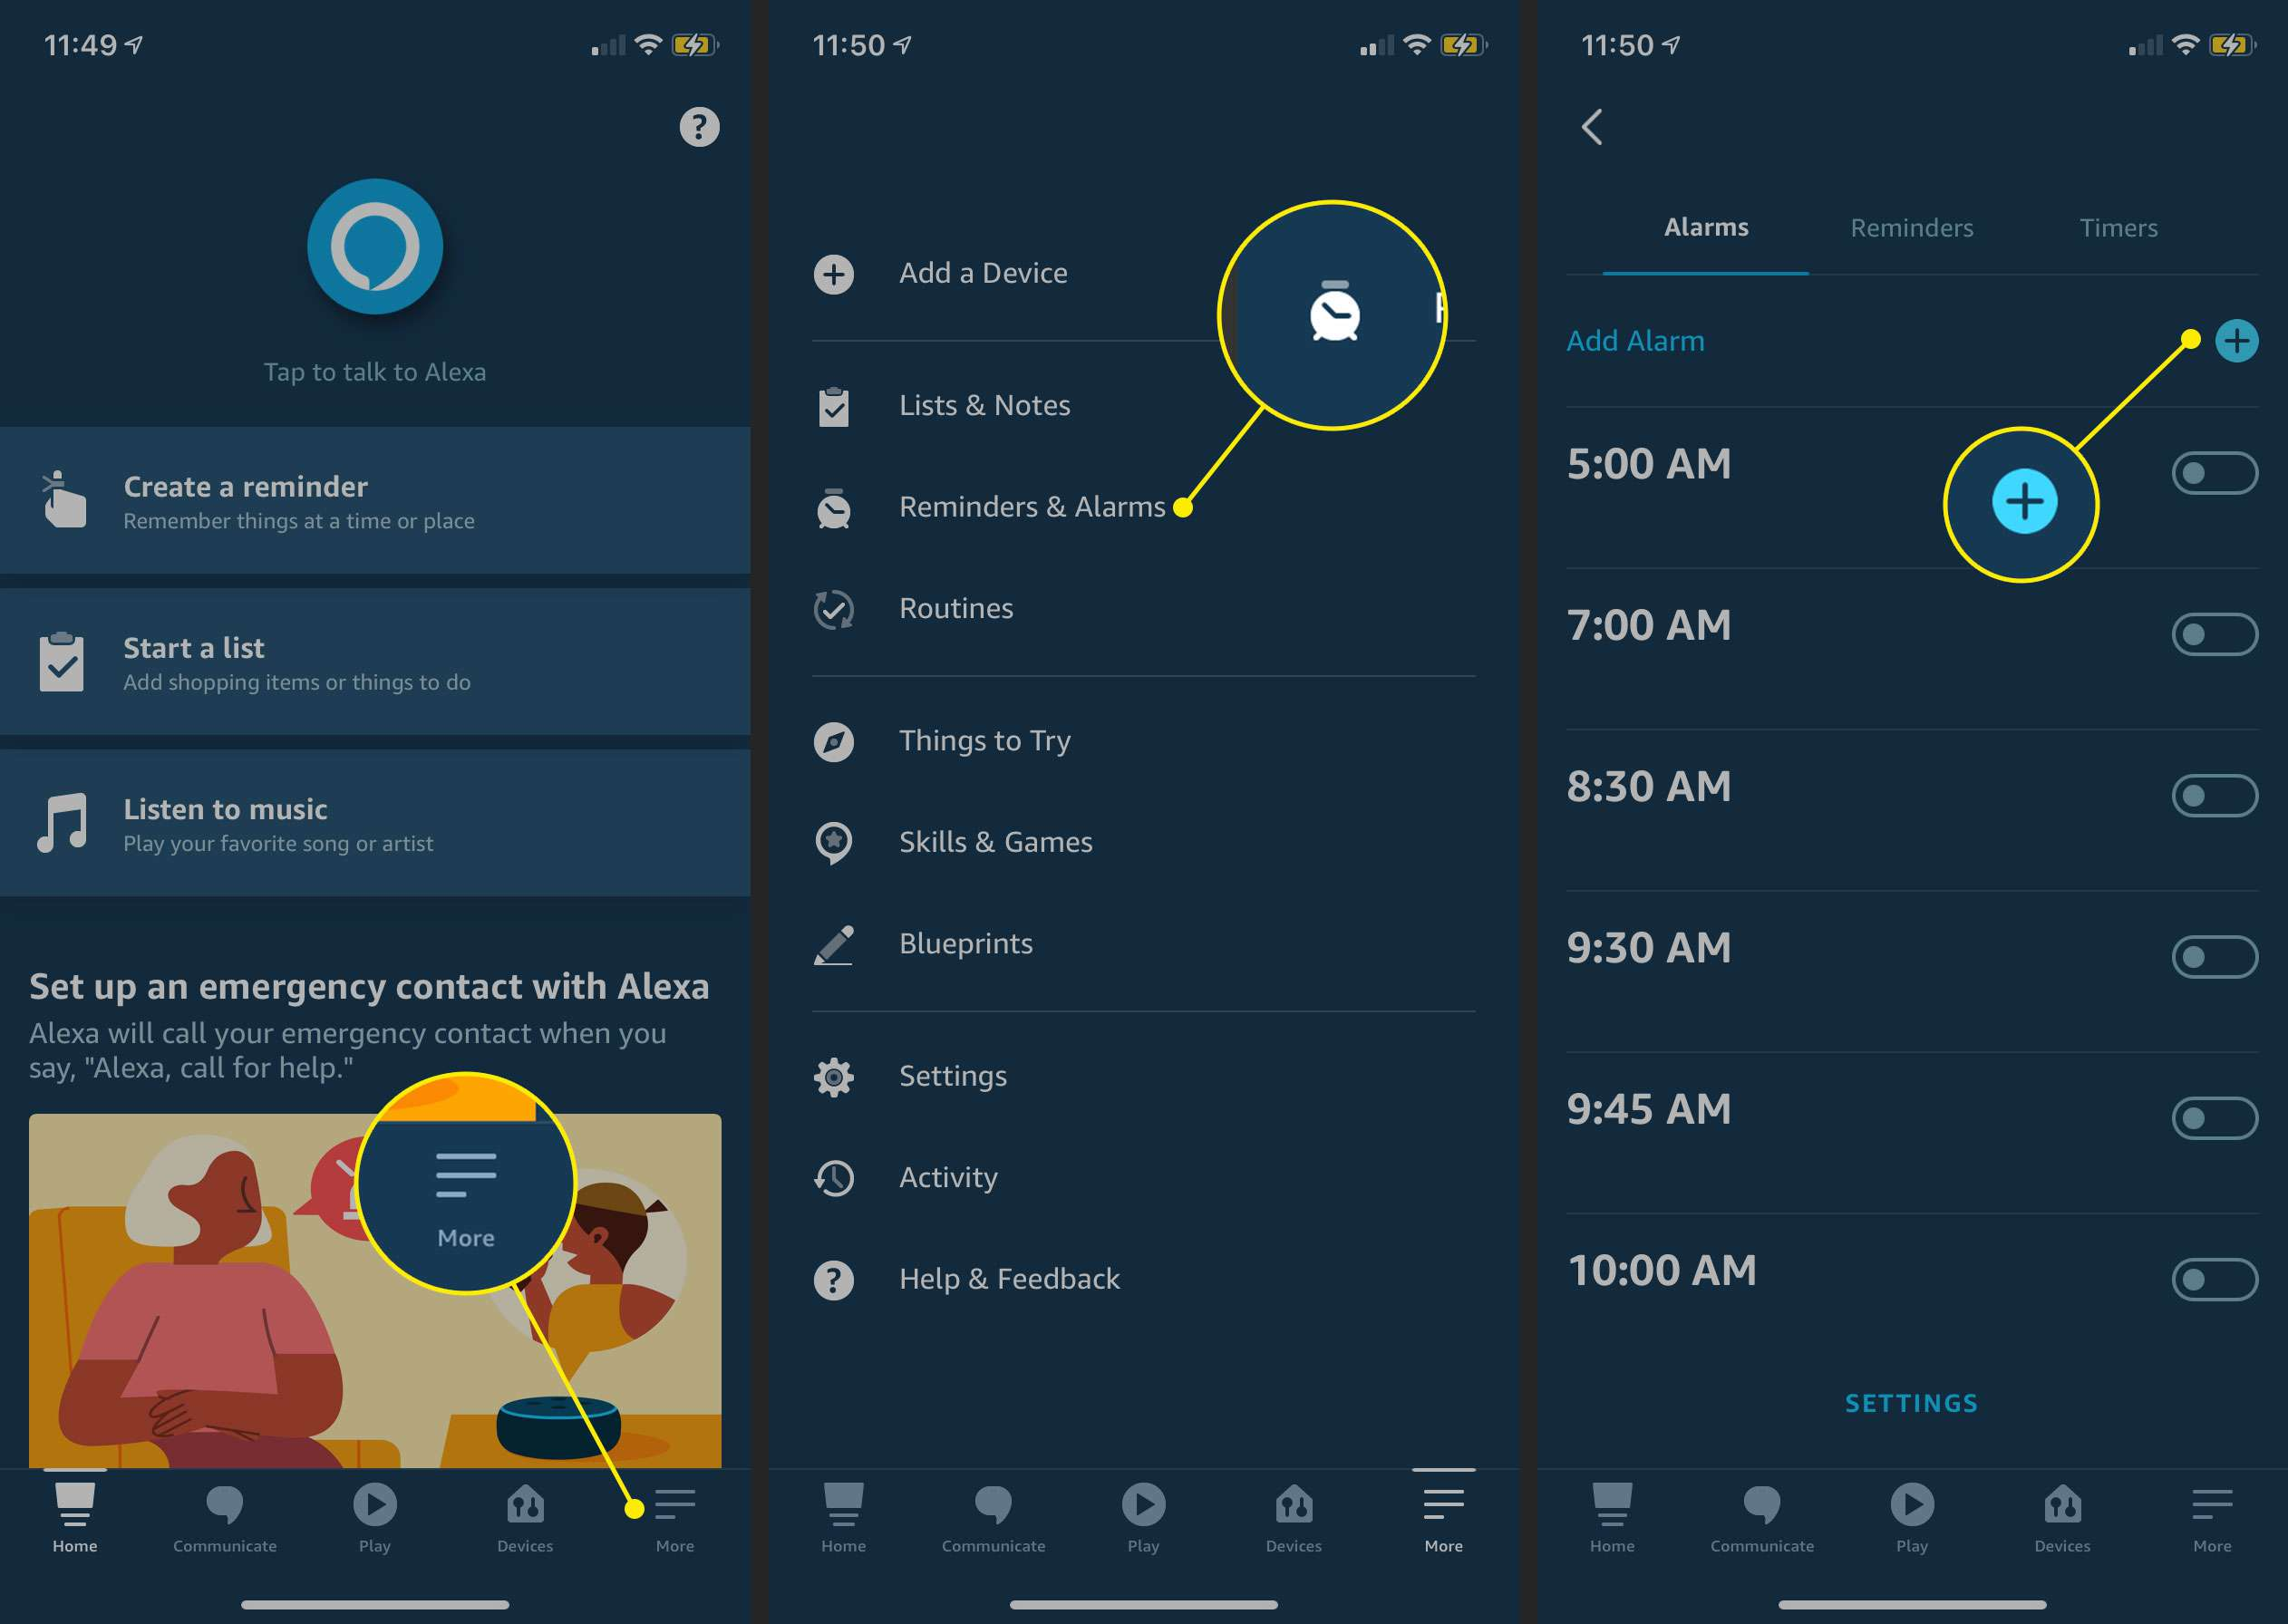 The More menu, Reminders & Alarms, and Add Alarm button in the Alexa app